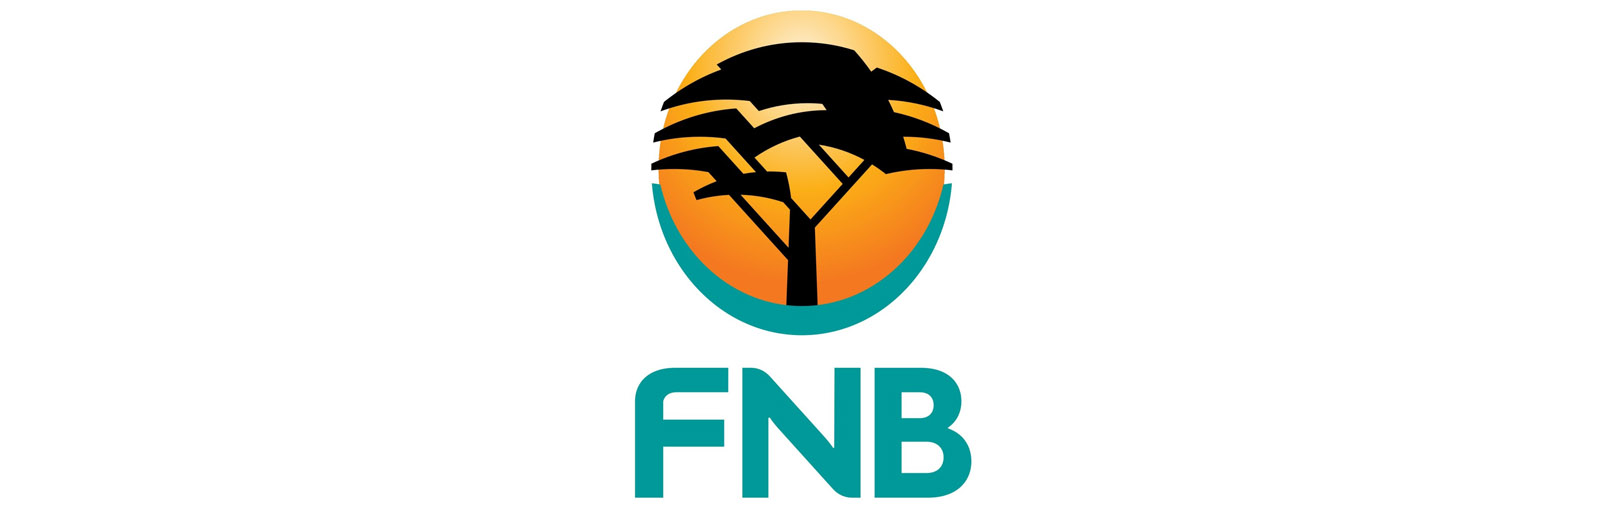 Fnb retail forex contact number